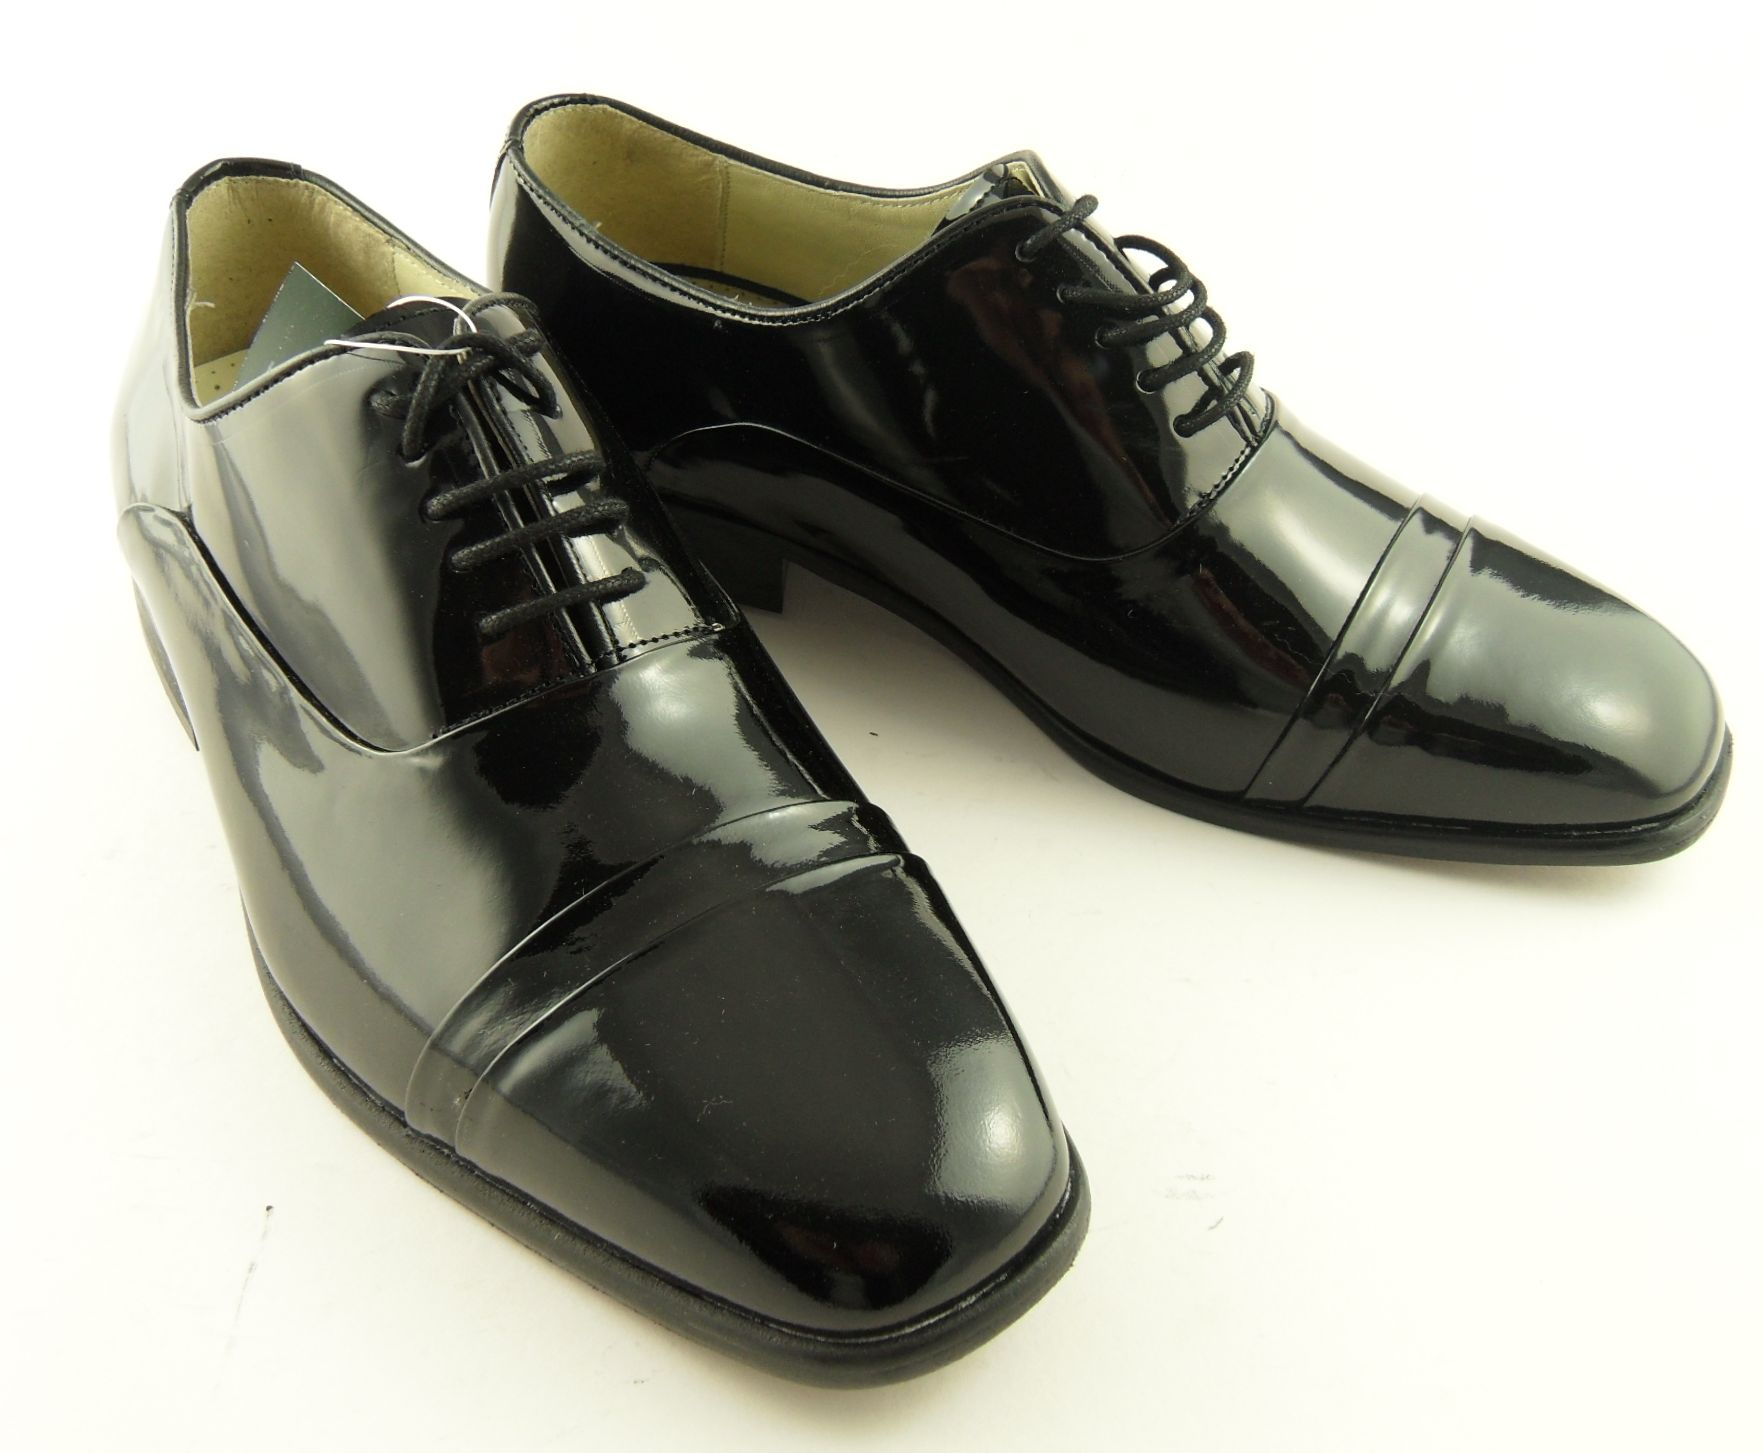 Details about Mens MONTECATINI Patent Leather Dress Shiny Shoes 7-12